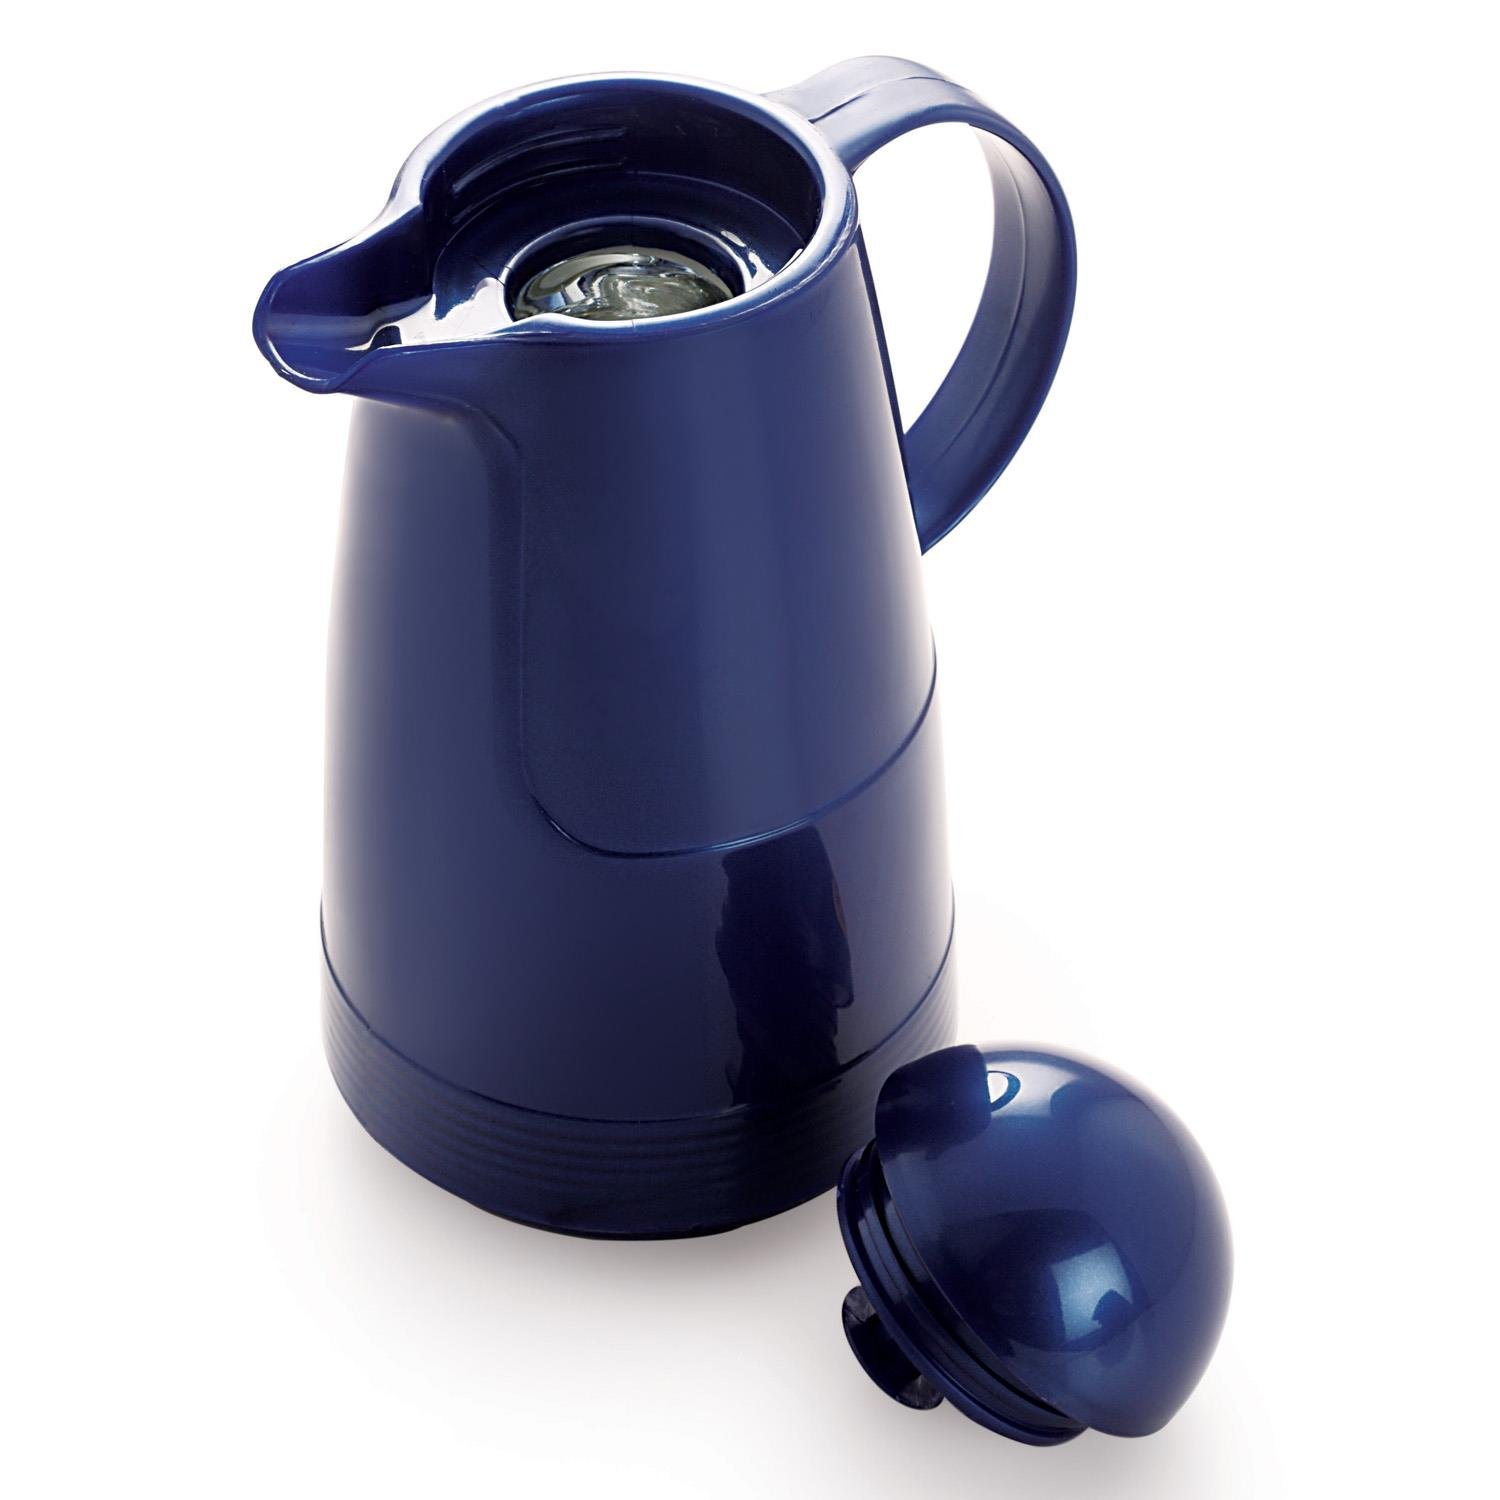 Cello Senorita Vacuum Flask